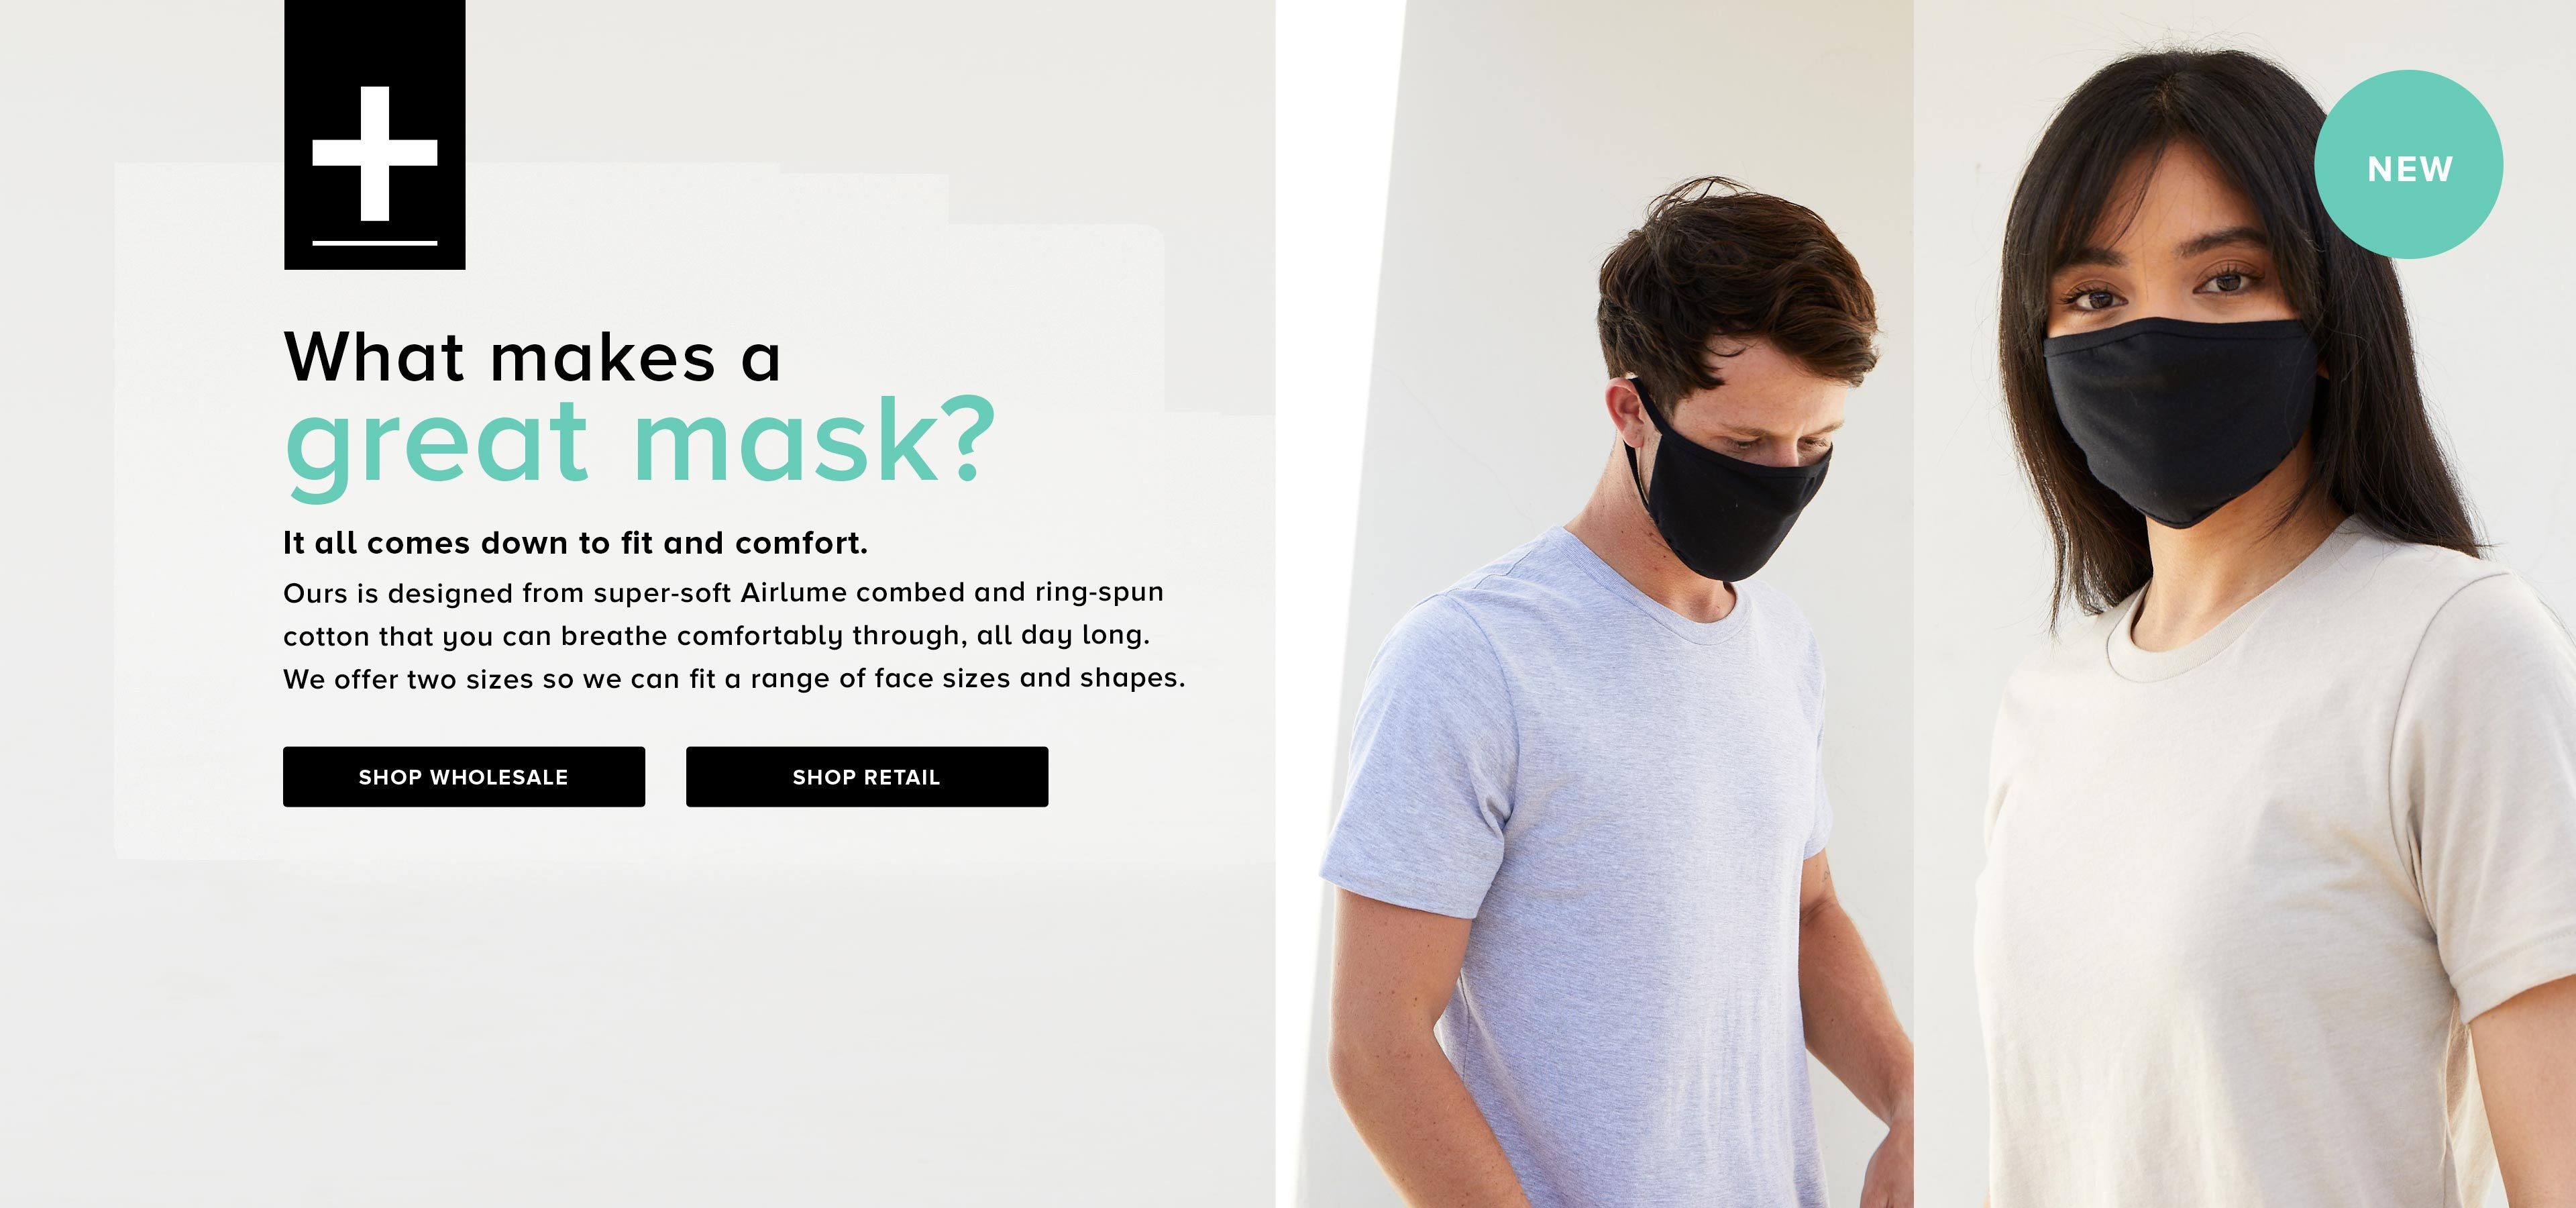 what makes a great mask banner, two people wearing black face covers